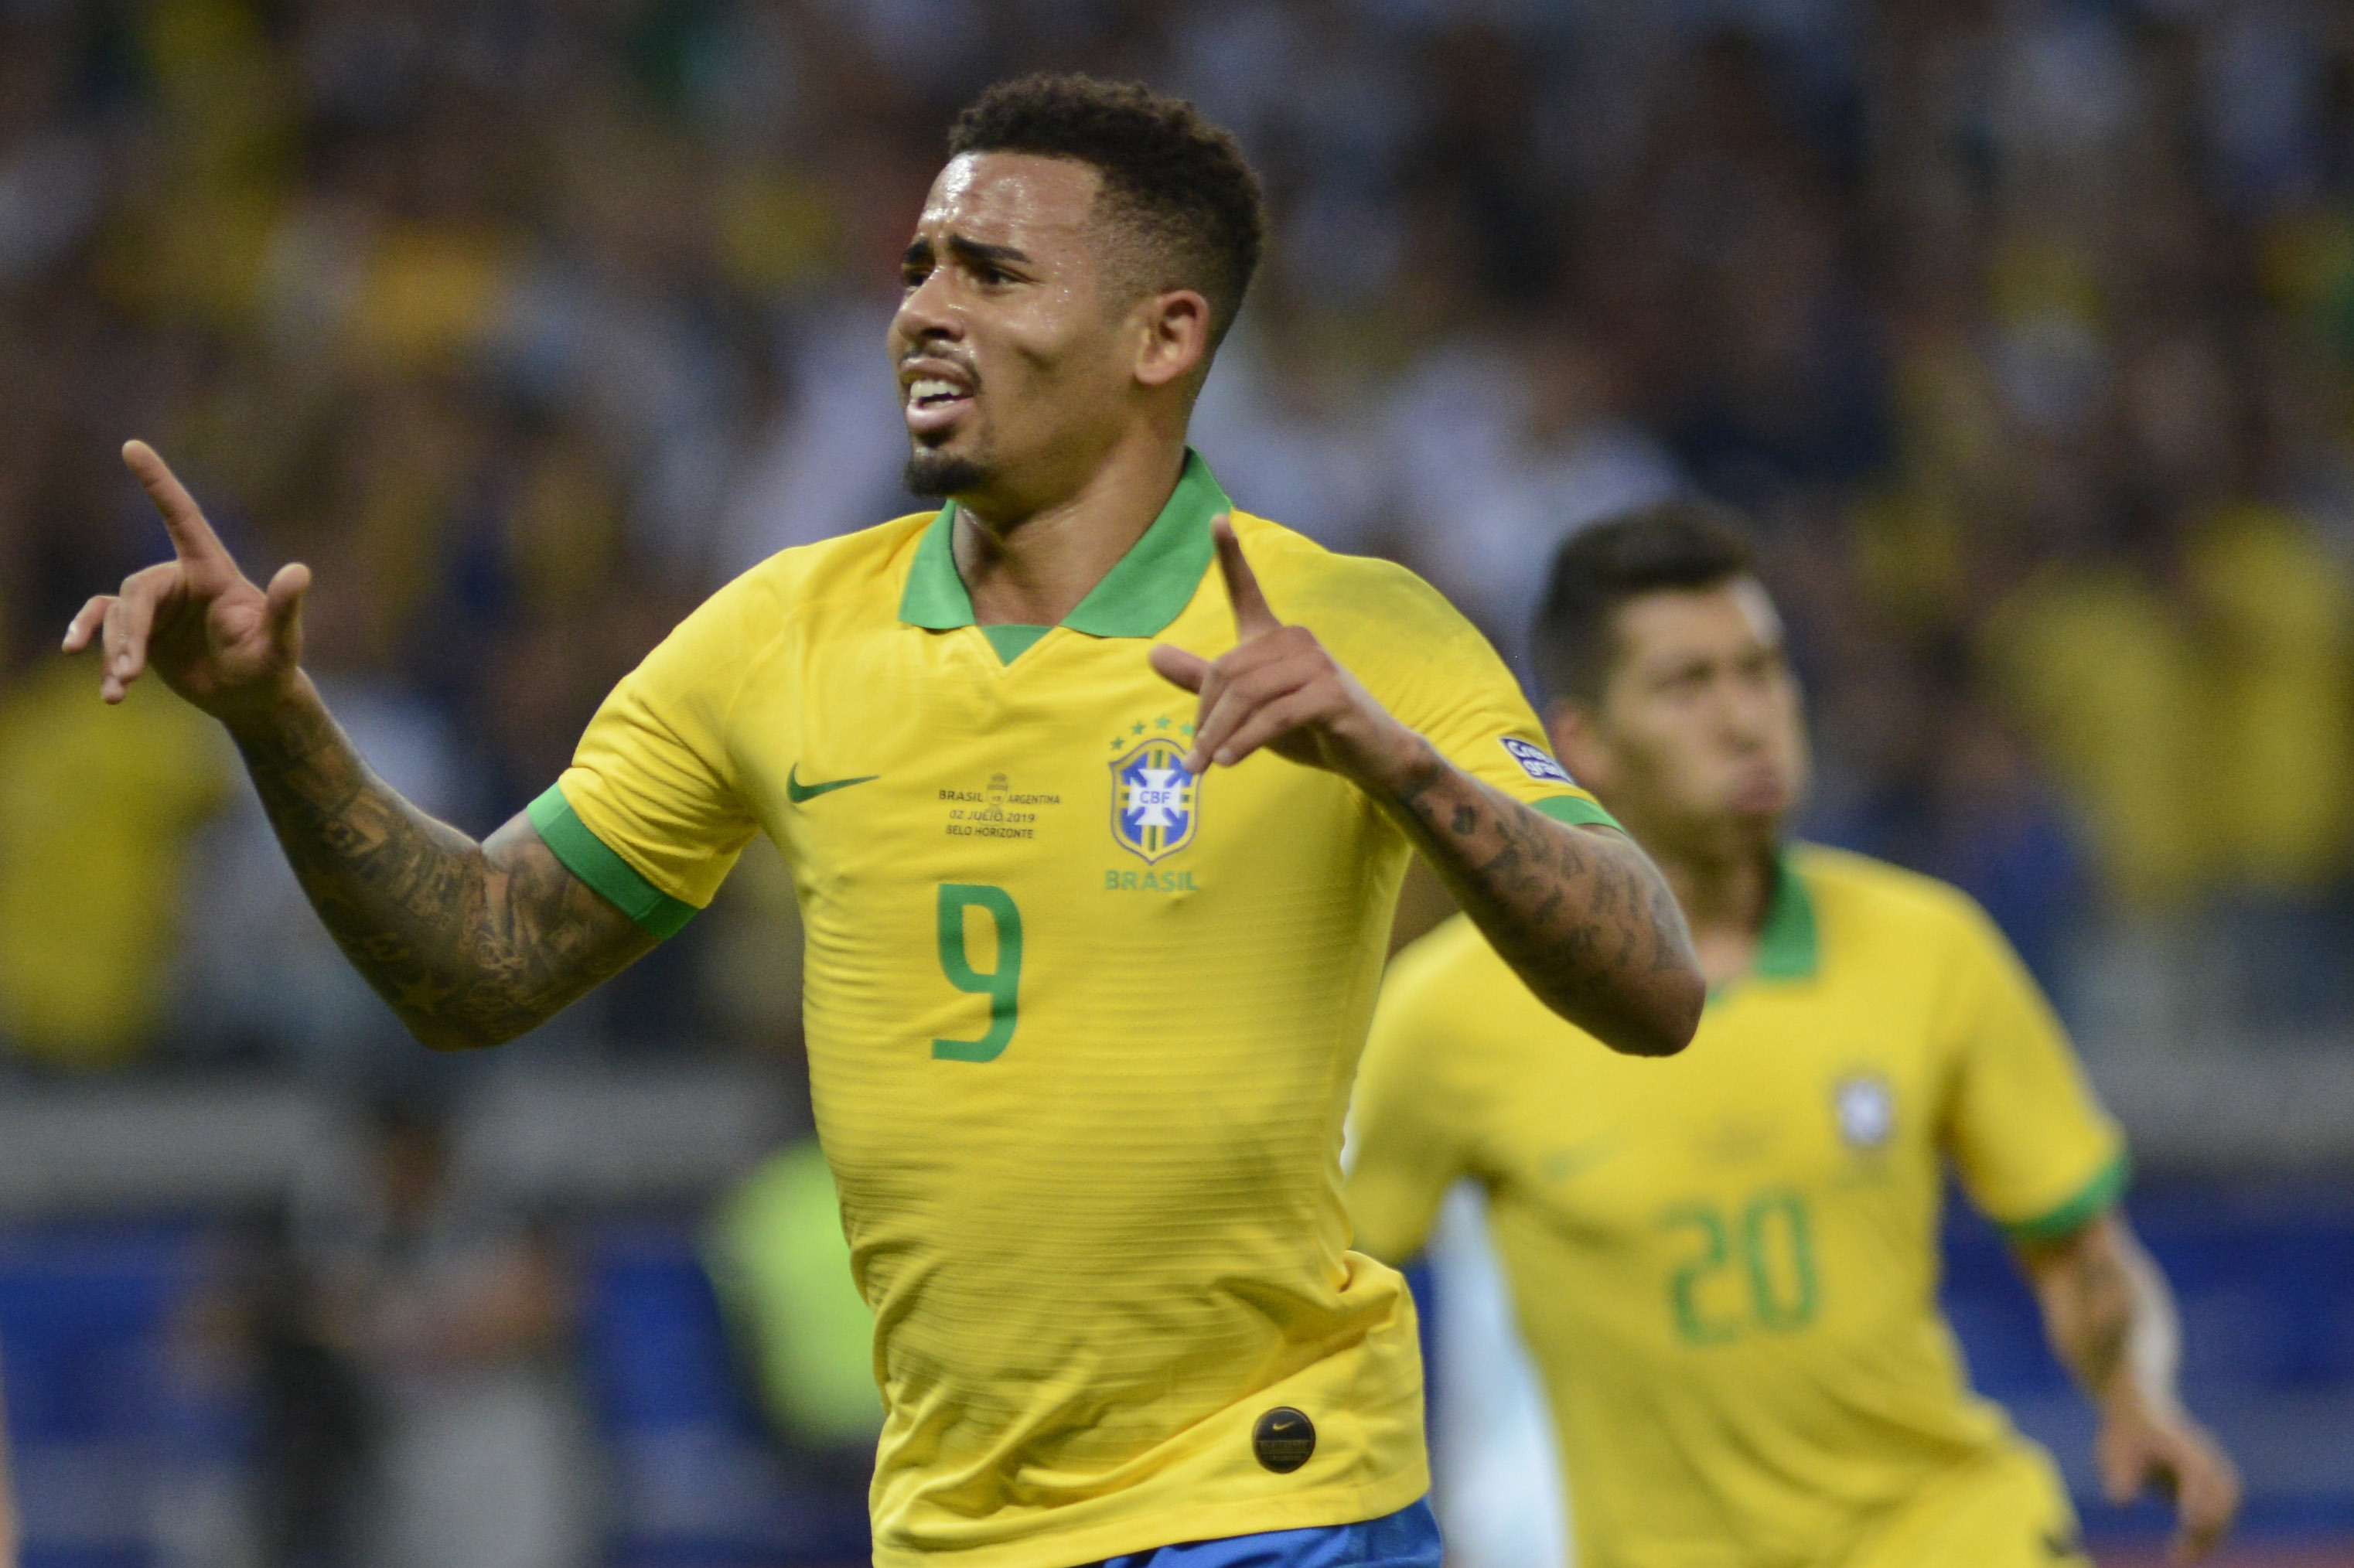 Brazil Vs Bolivia Free Live Stream 10 9 20 Watch Conmebol 2022 Fifa World Cup Qualifier Online En Vivo Time Tv Channel Nj Com